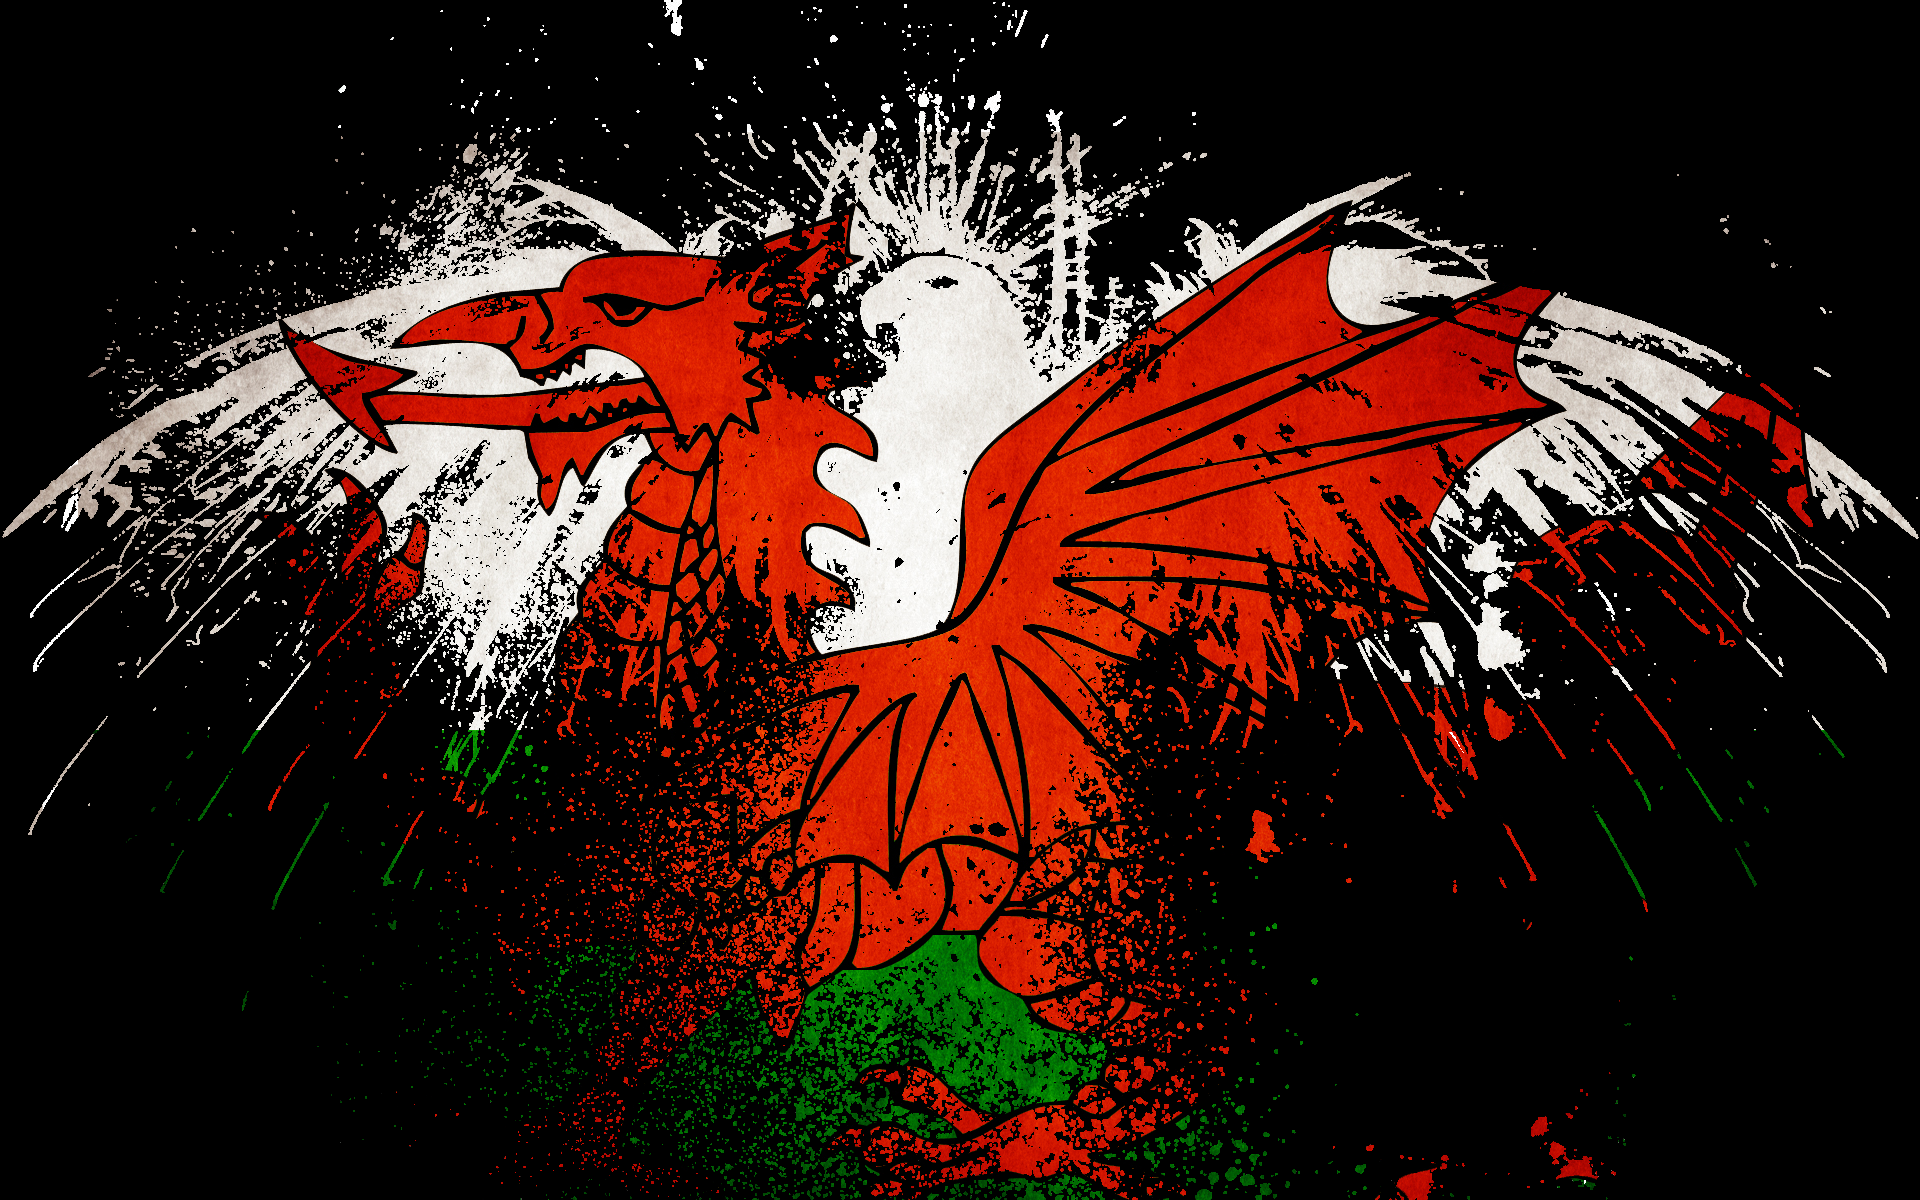 Eagles Wales Wallpaper 1920x1200 Eagles Wales 1920x1200